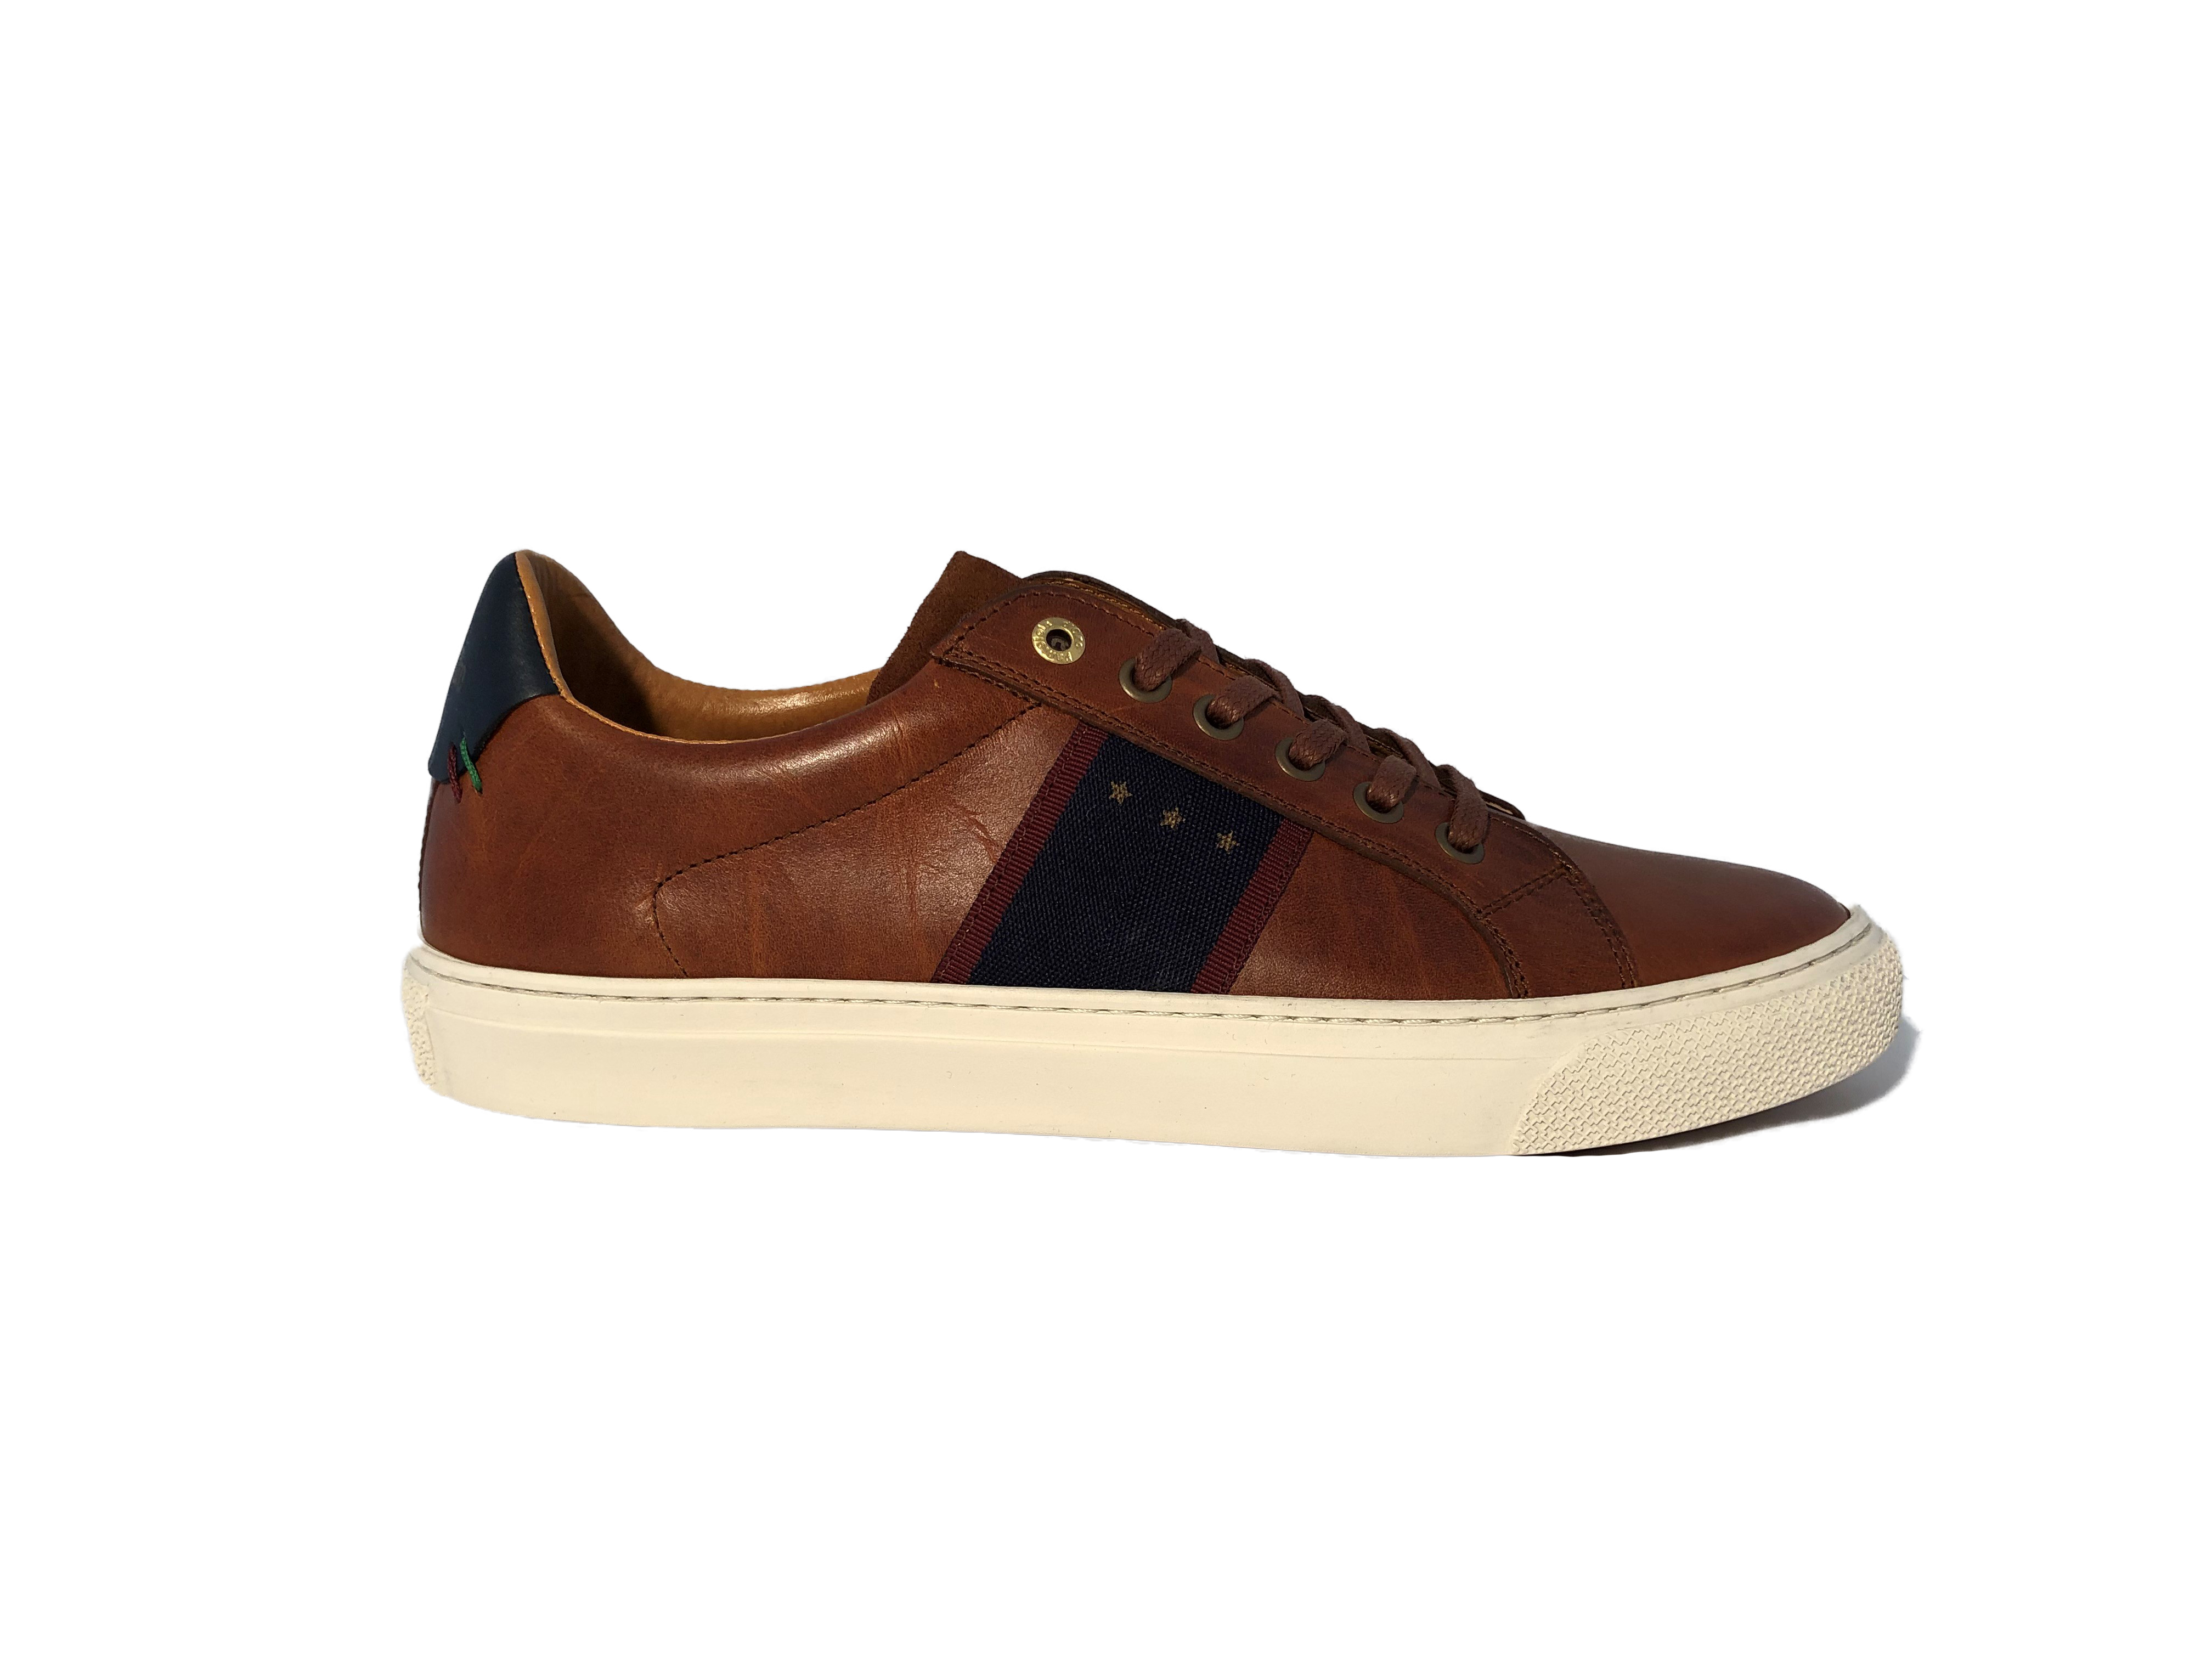 Pantofola d'Oro Zelo Low sneakers